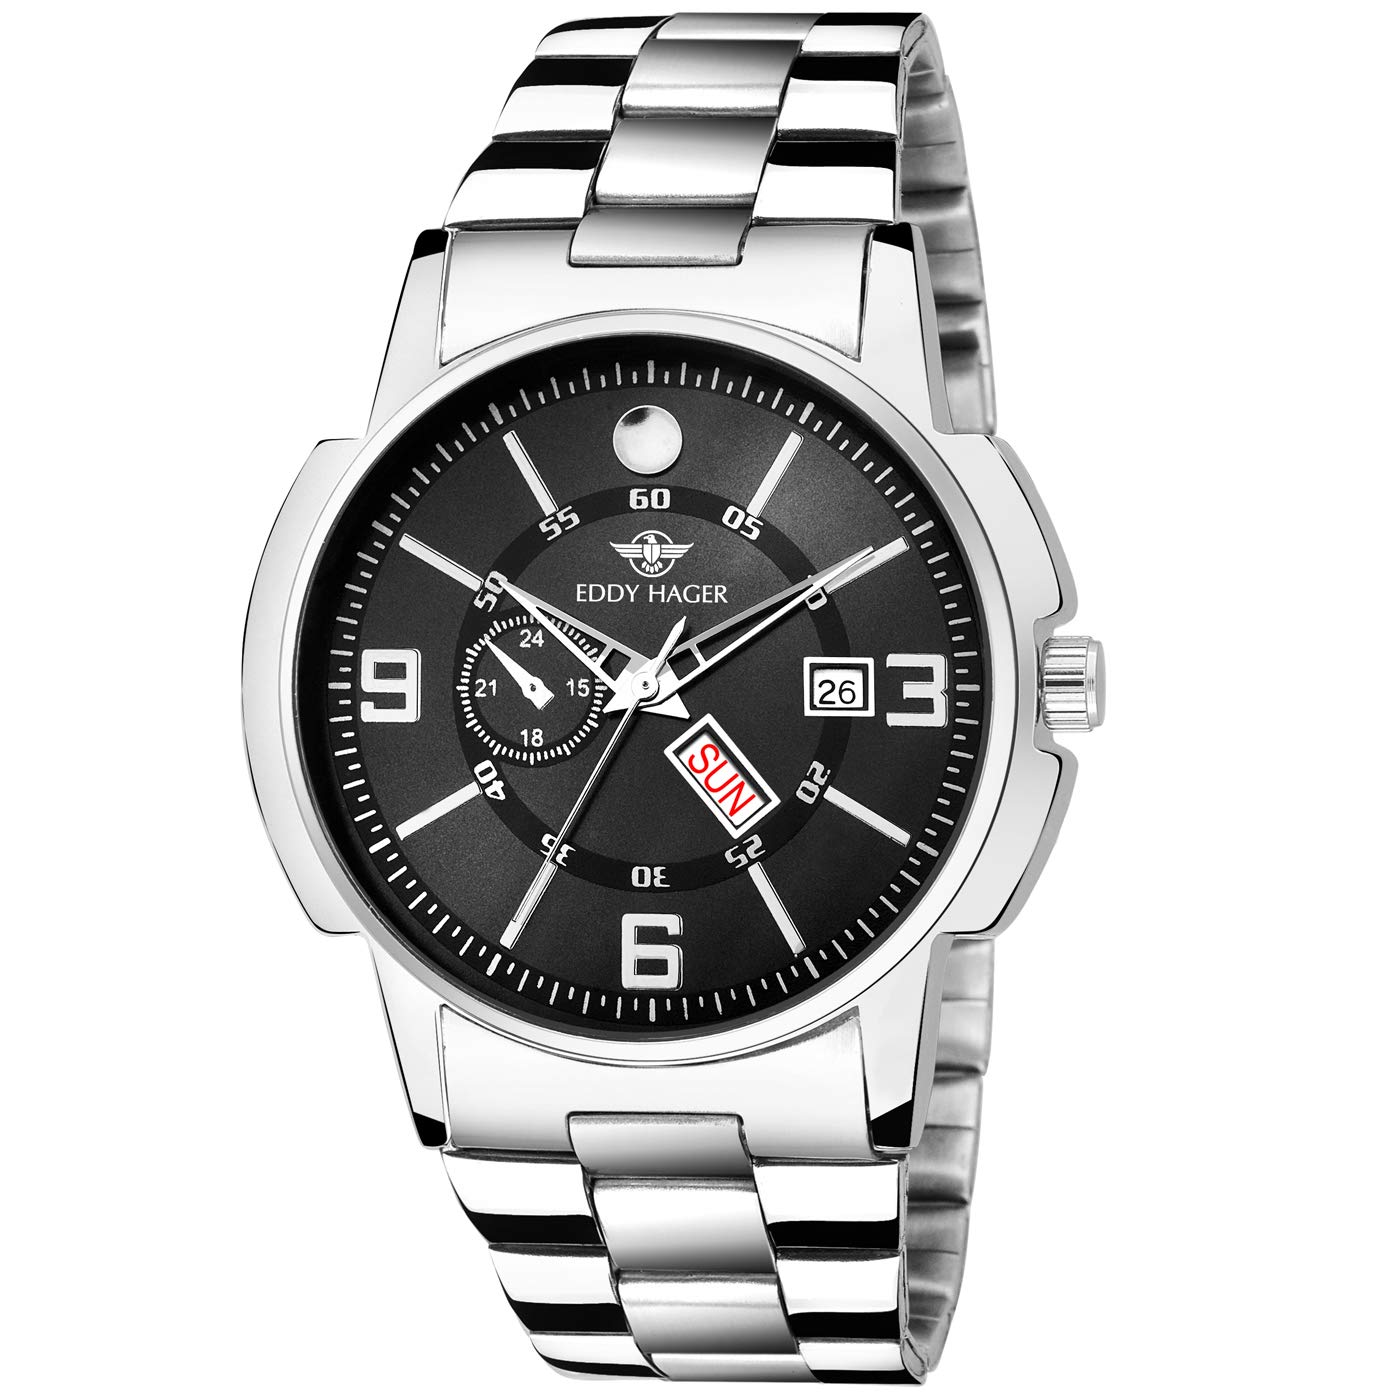 Eddy Hager Day and Date Men's Watch EH-226 product image